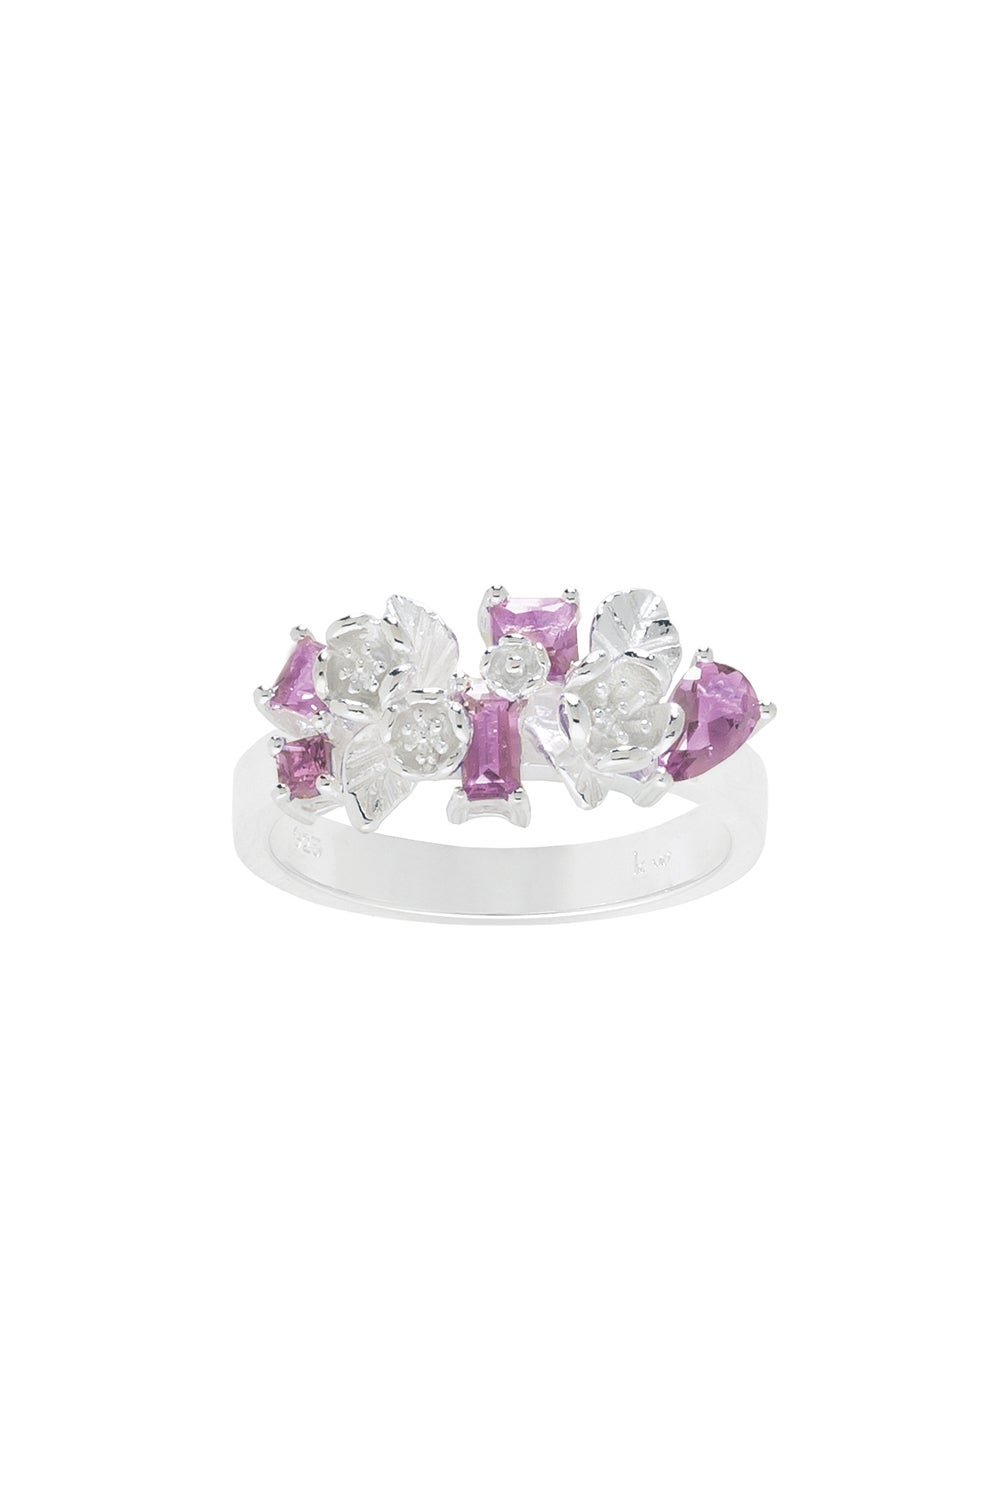 Rock Garden Flowers Ring Silver & Amethyst